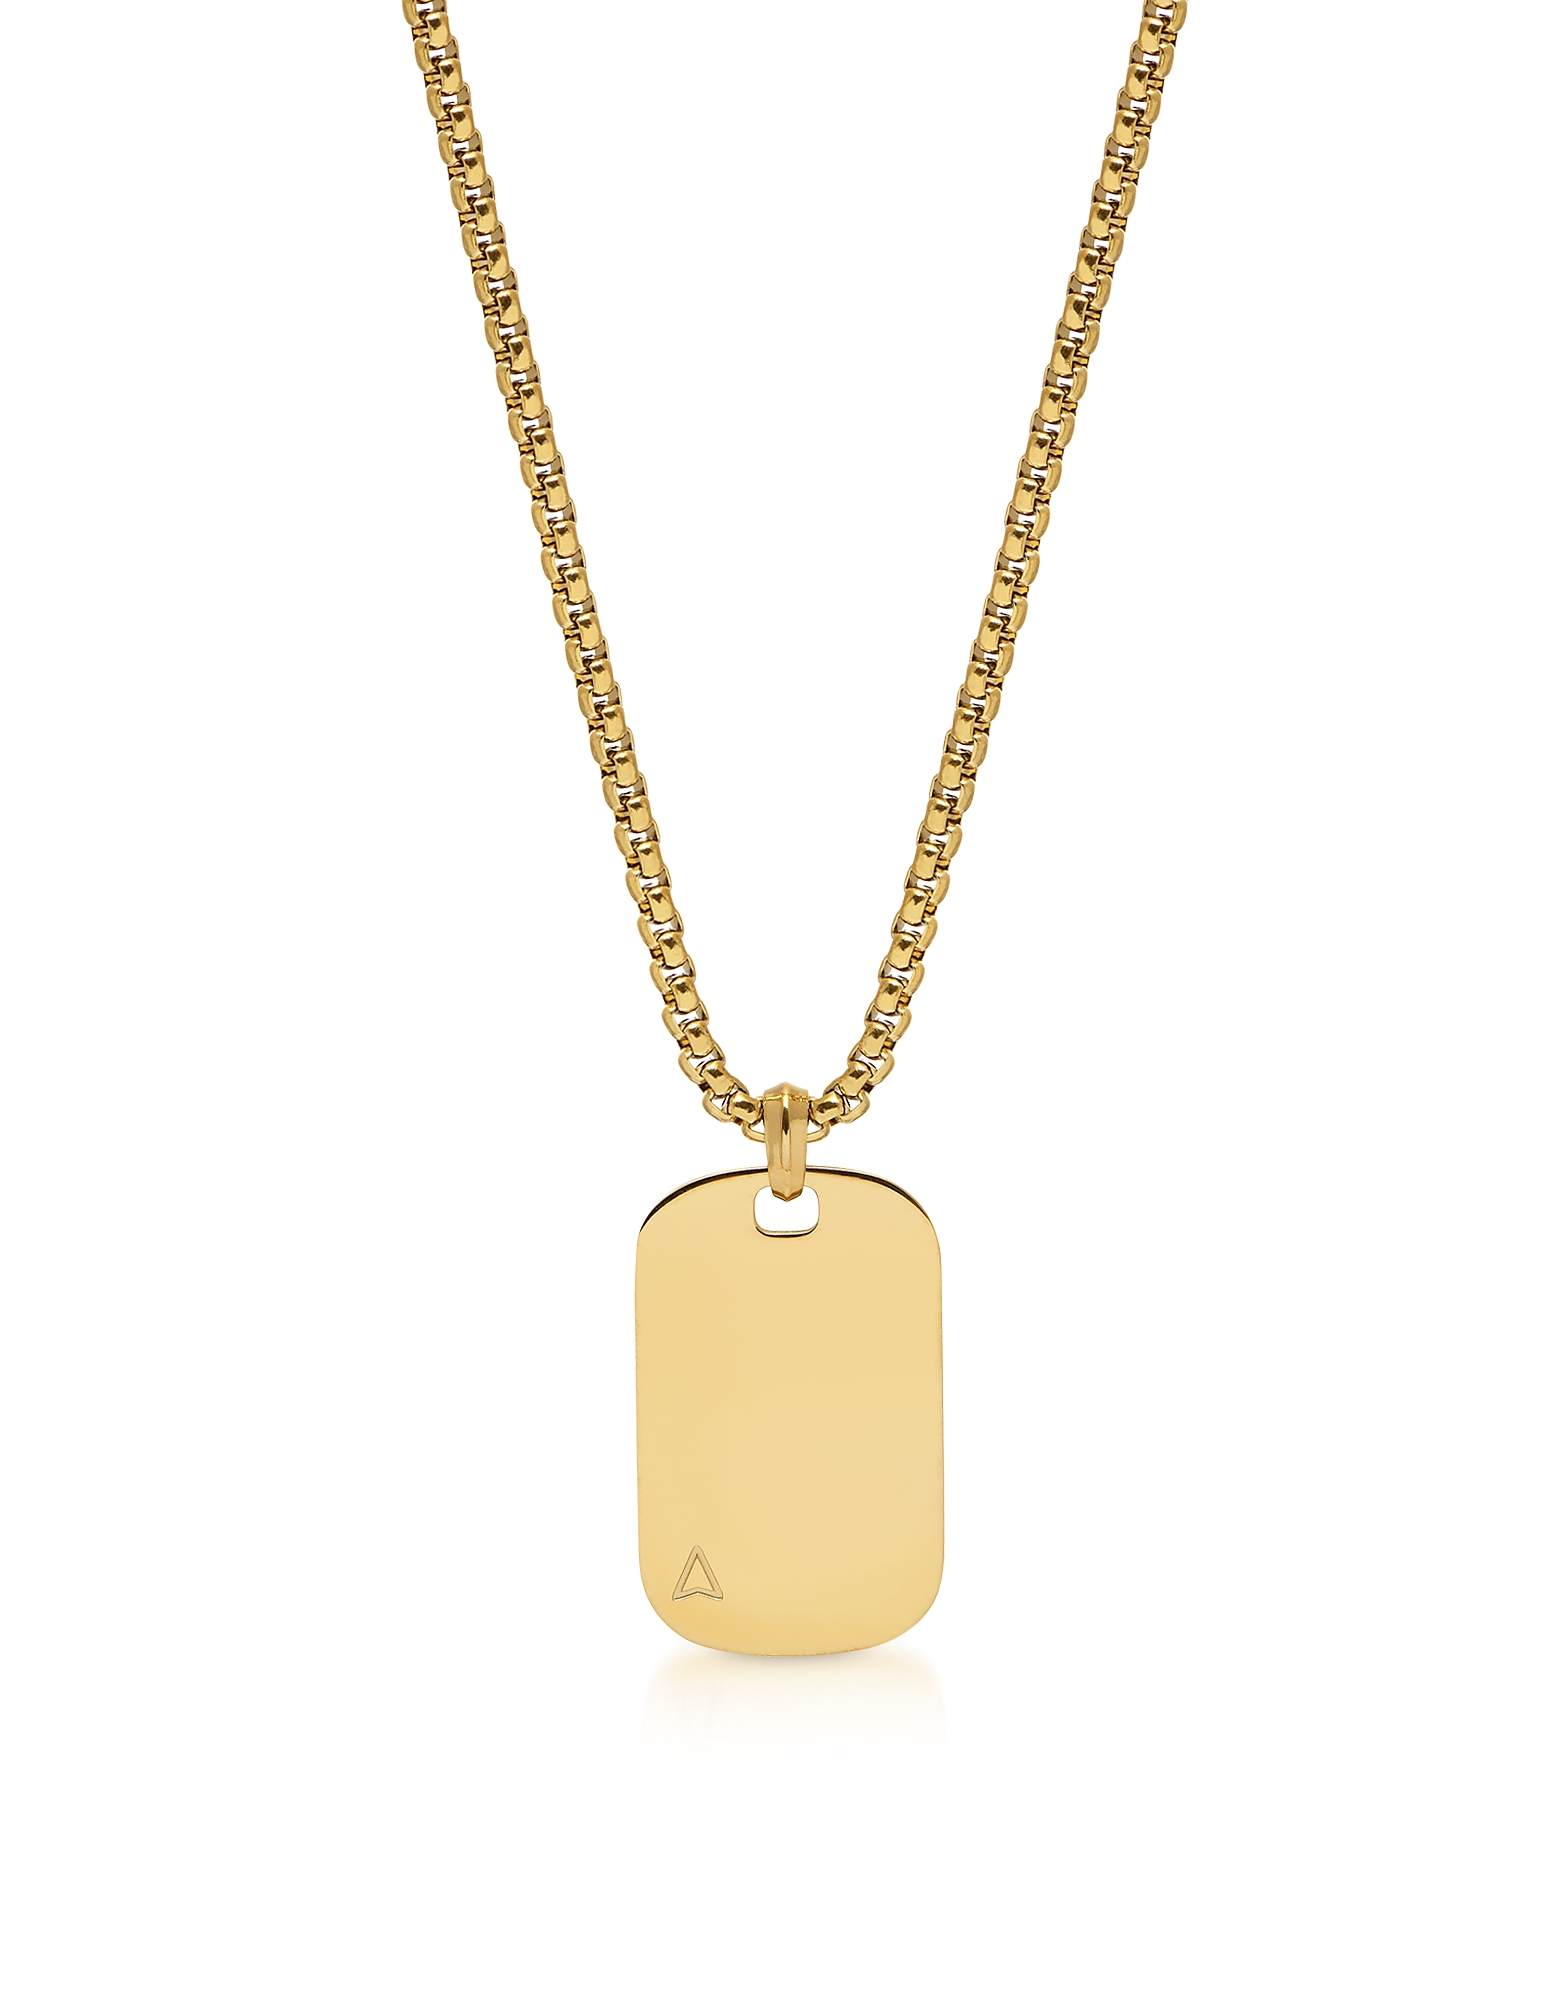 Northskull Designer Men's Necklaces, Id Tag Necklace In Yellow Gold